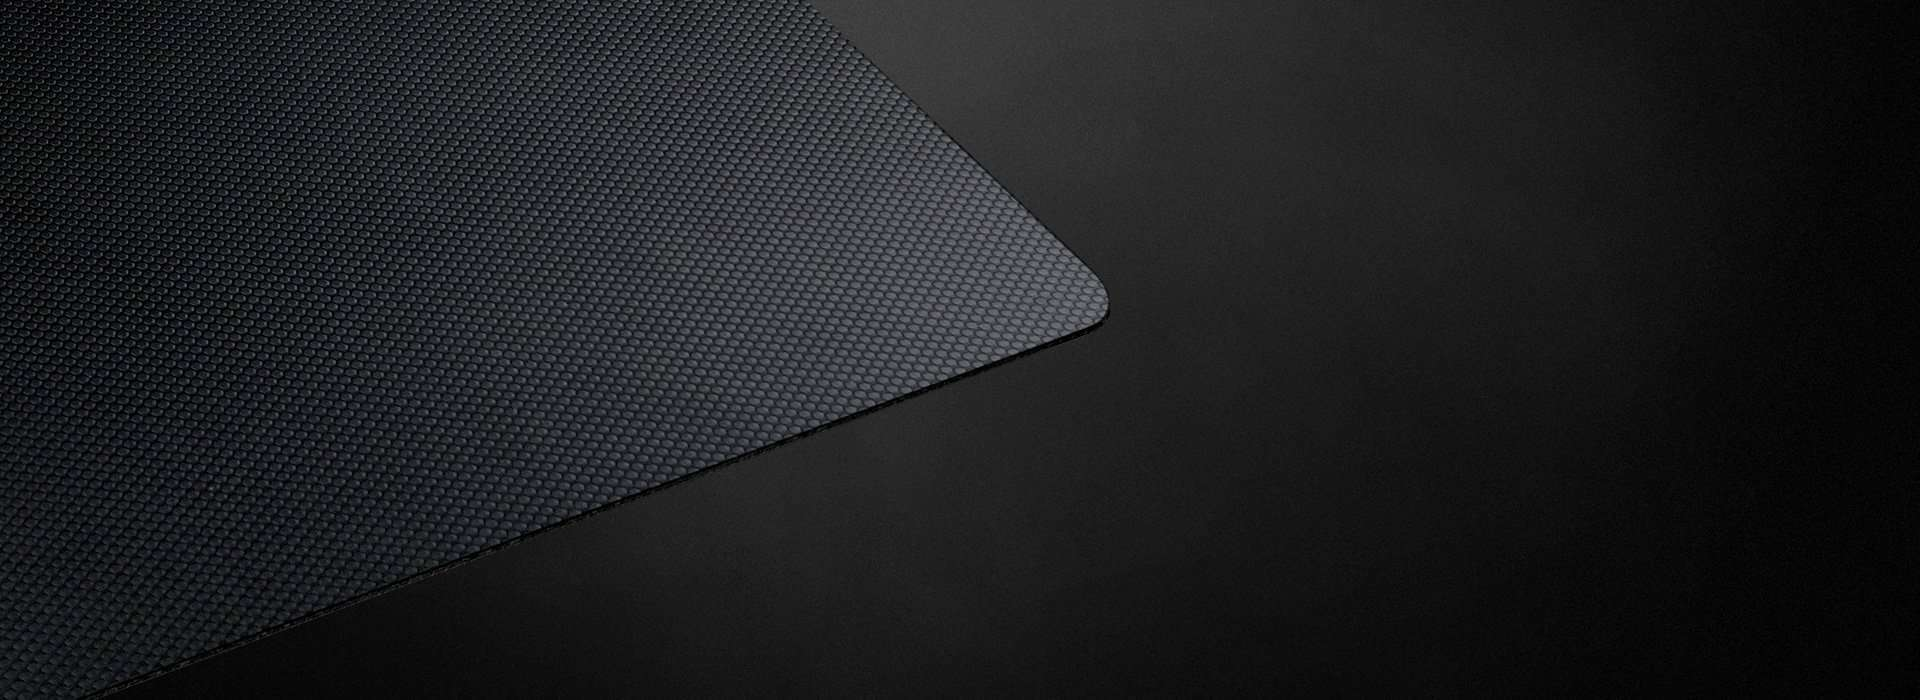 Best Mouse Pads 2019 – Reviews and Buyer's Guide